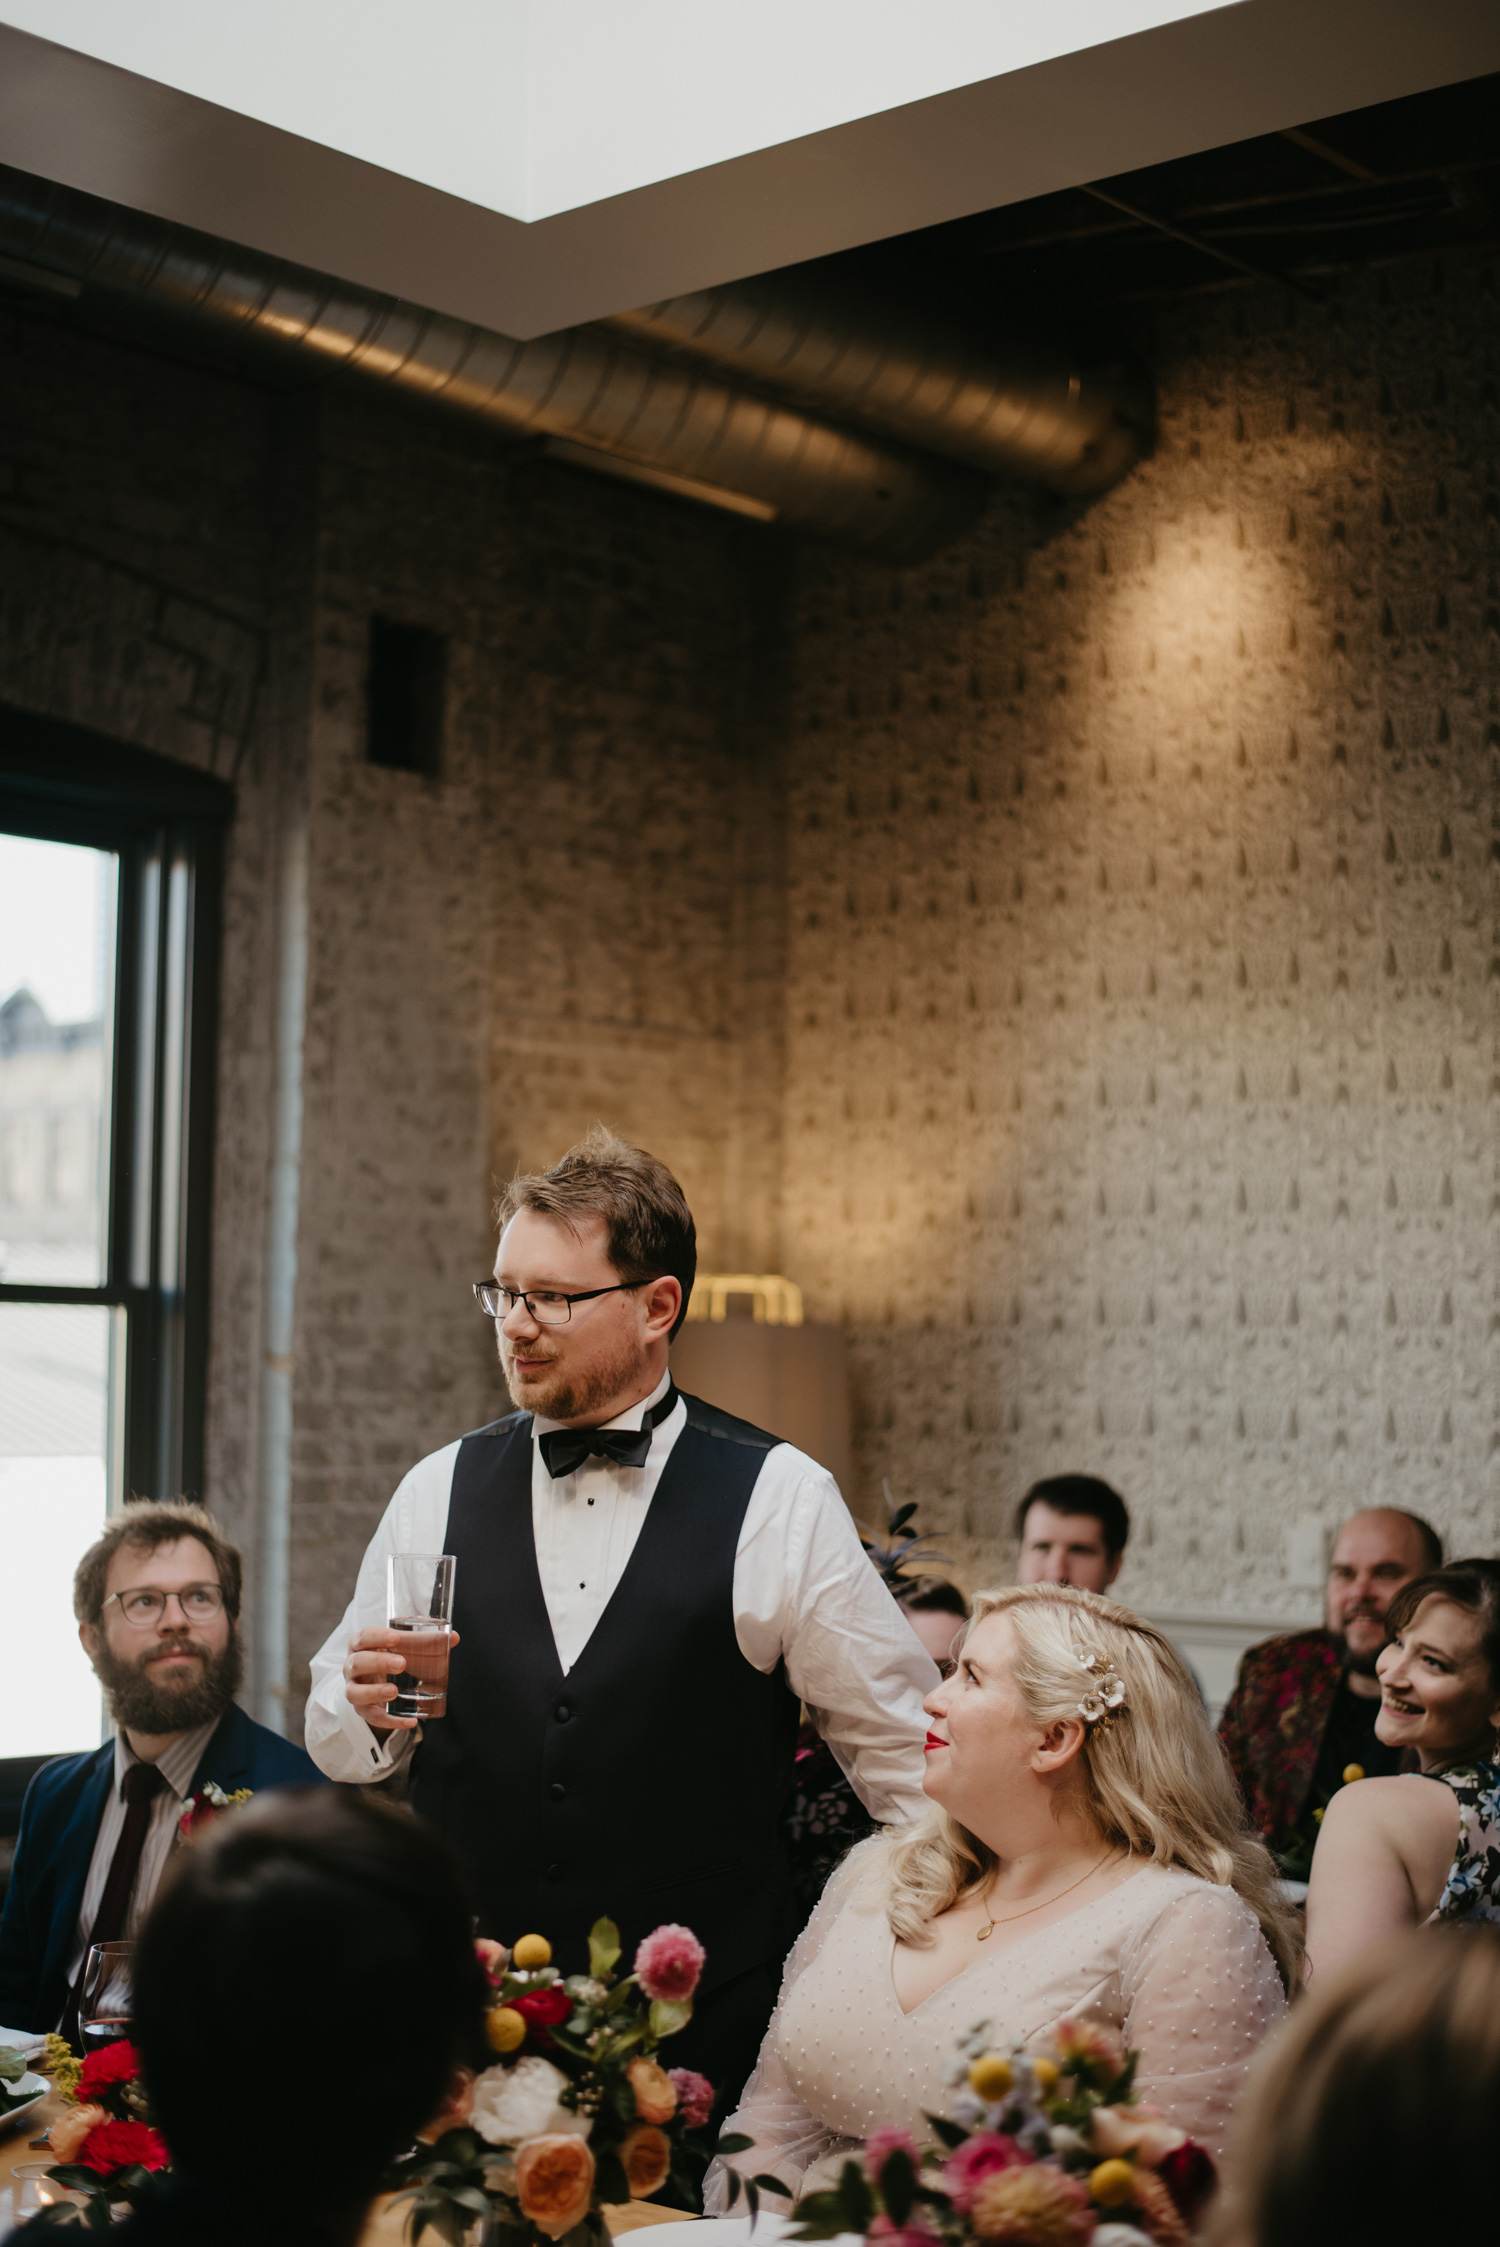 Groom giving a toast during wedding dinner at Bachelor Farmer, Minneapolis